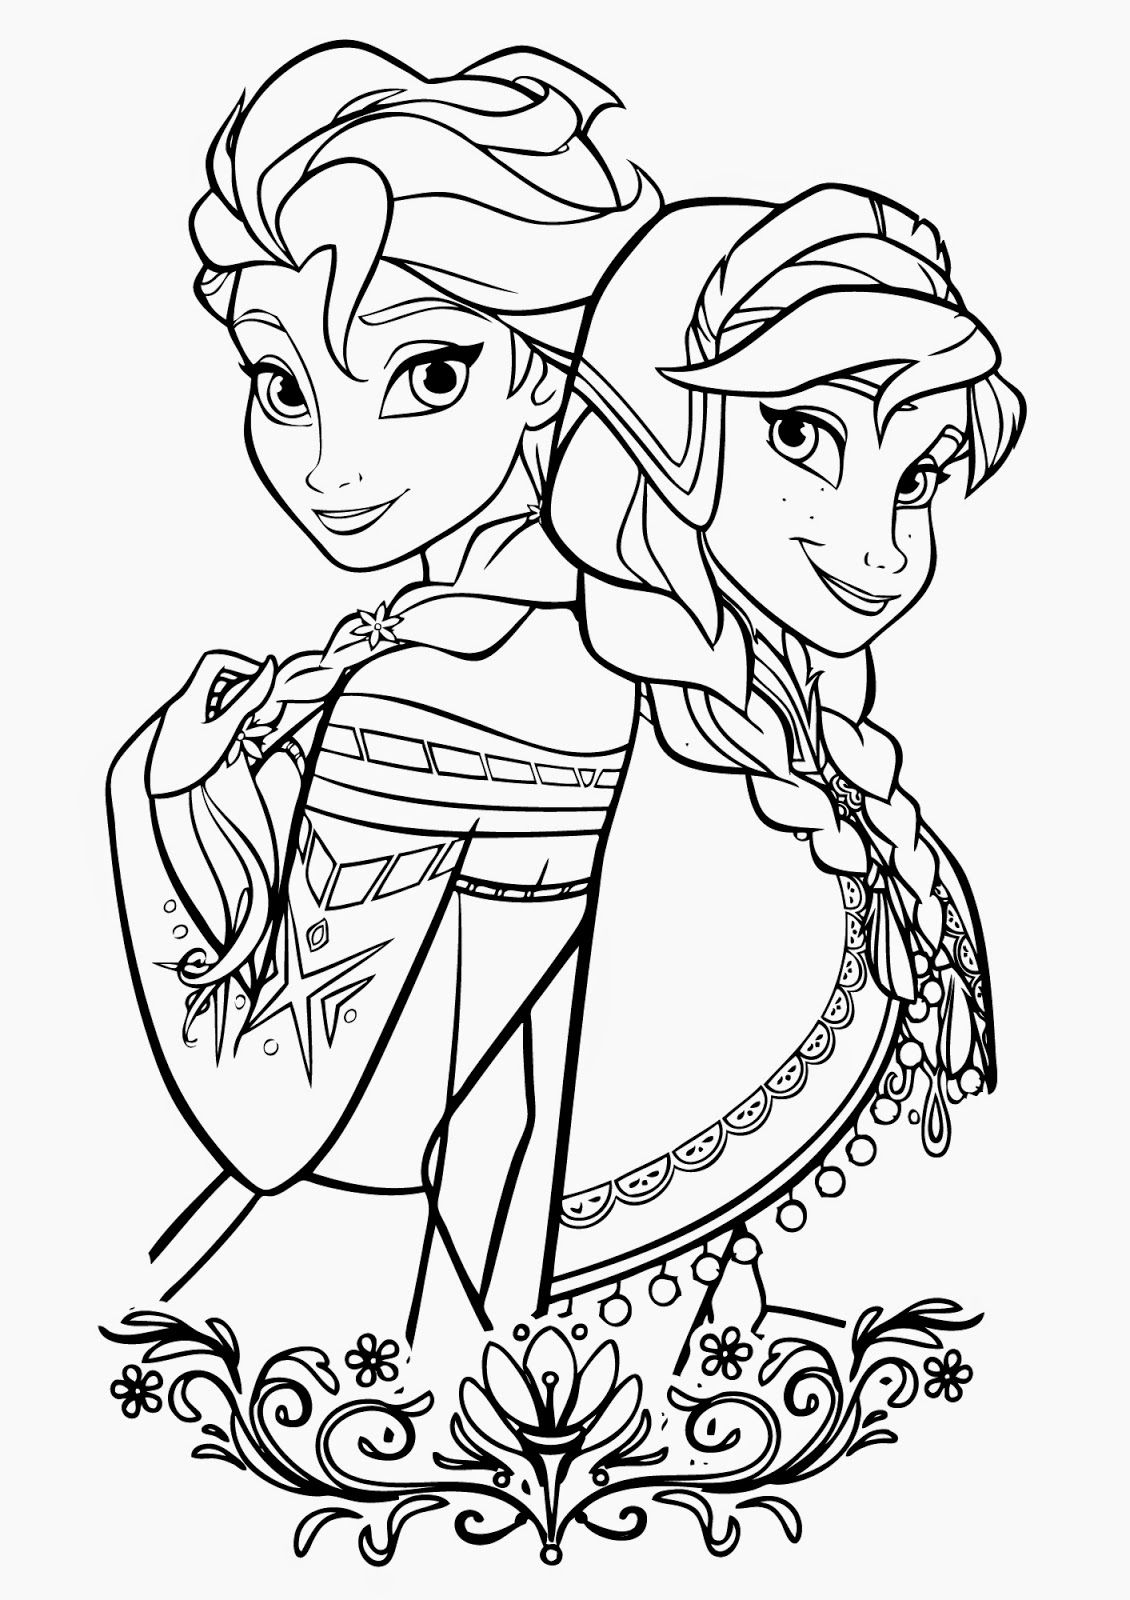 Coloring pages frozen - Frozen Coloring Pages 18 More